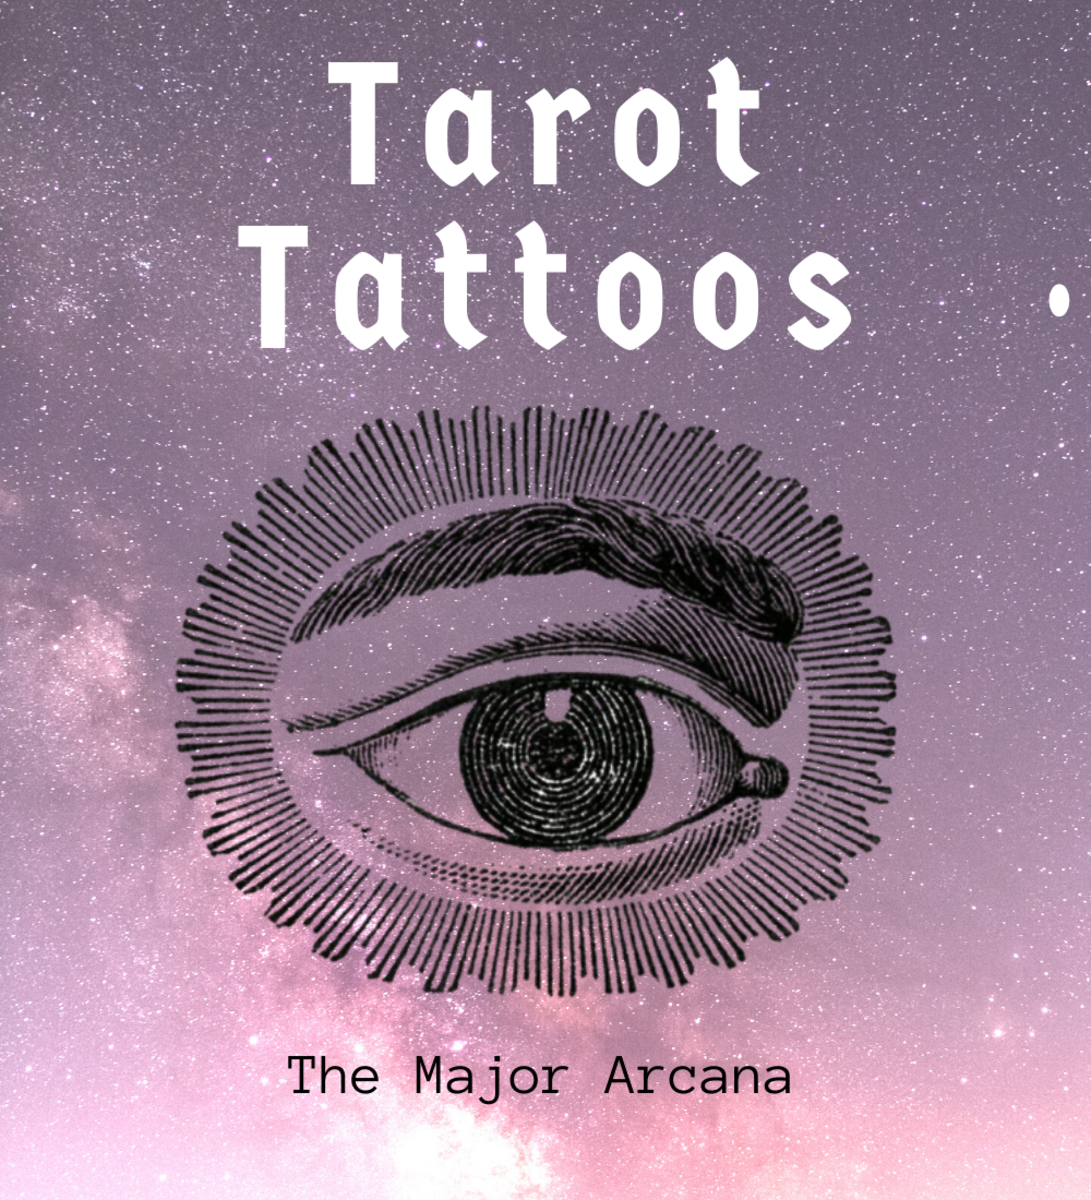 What does every tarot card tattoo really mean?